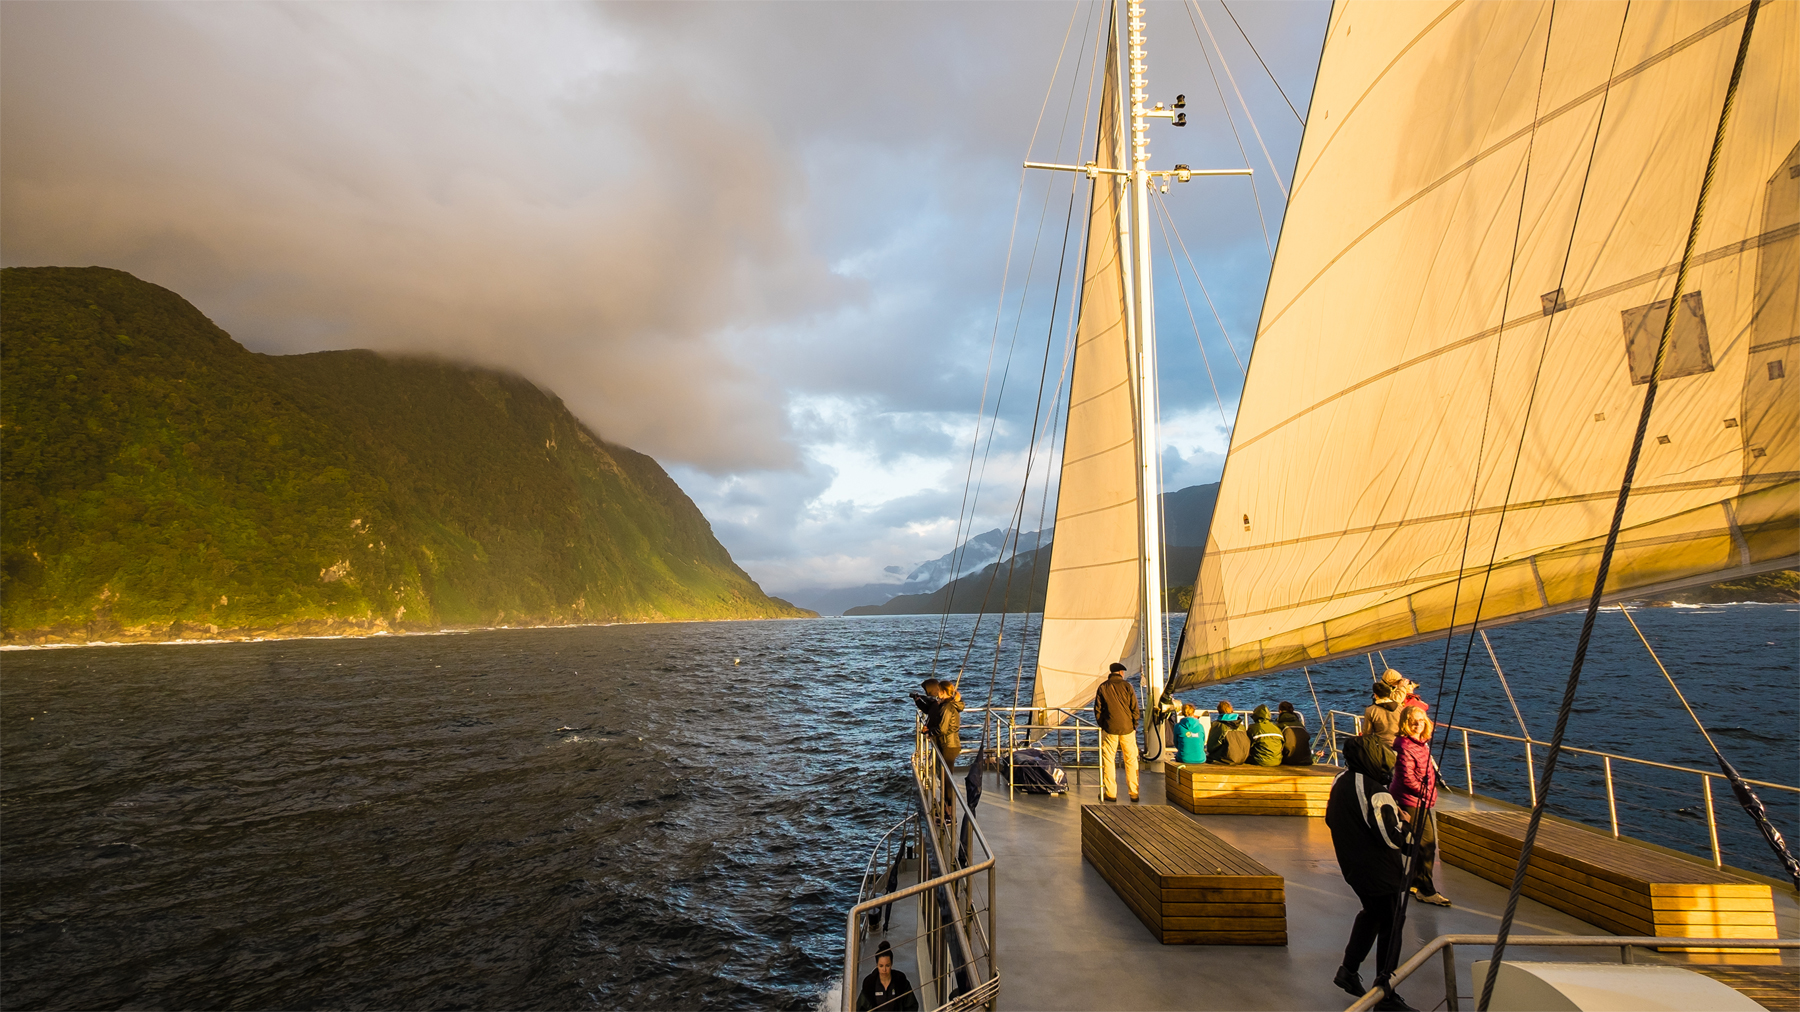 Sailing to Doubtful Sound from the Tasman Sea.